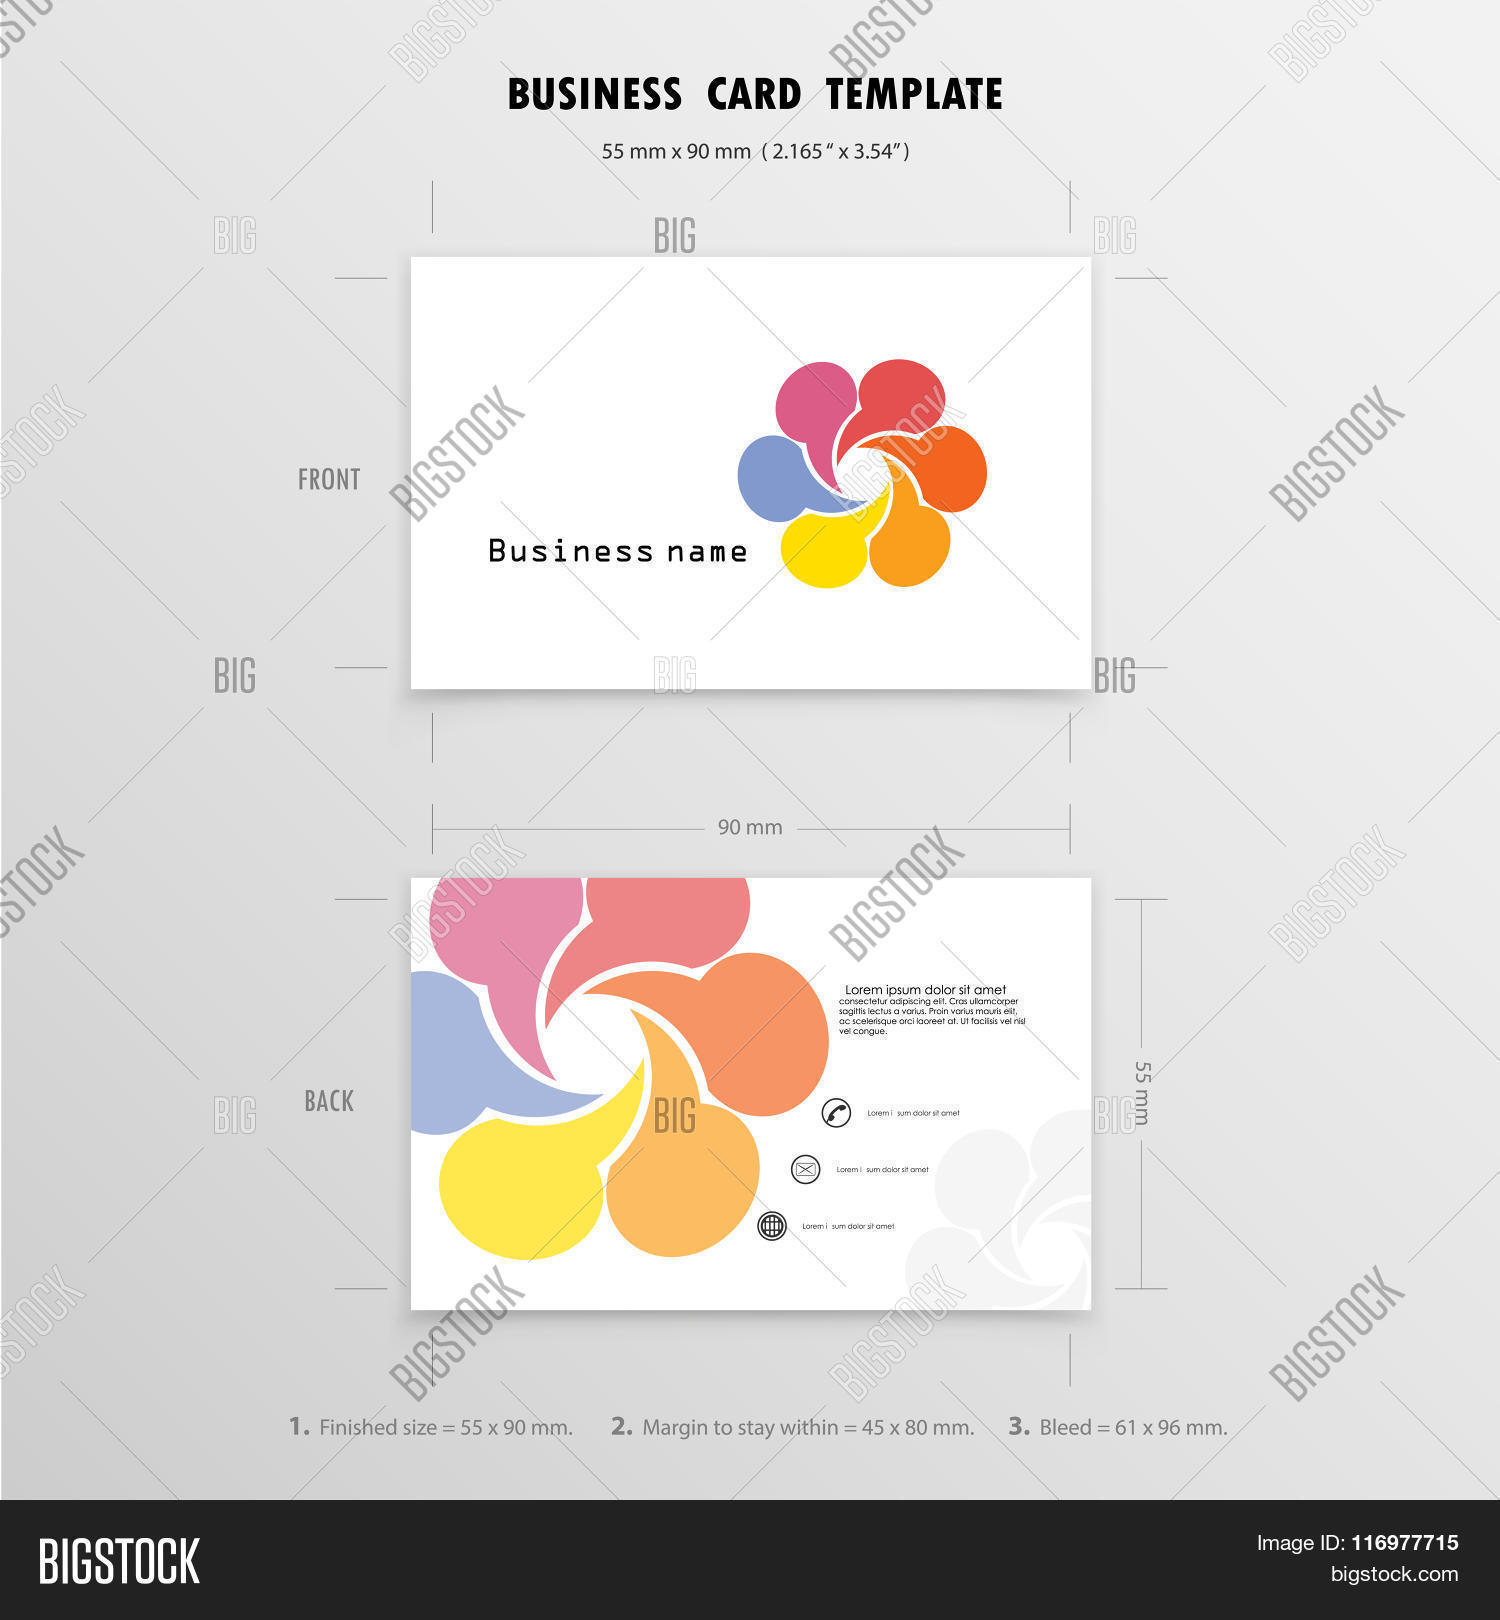 Abstract Creative Business Cards Vector & Photo | Bigstock